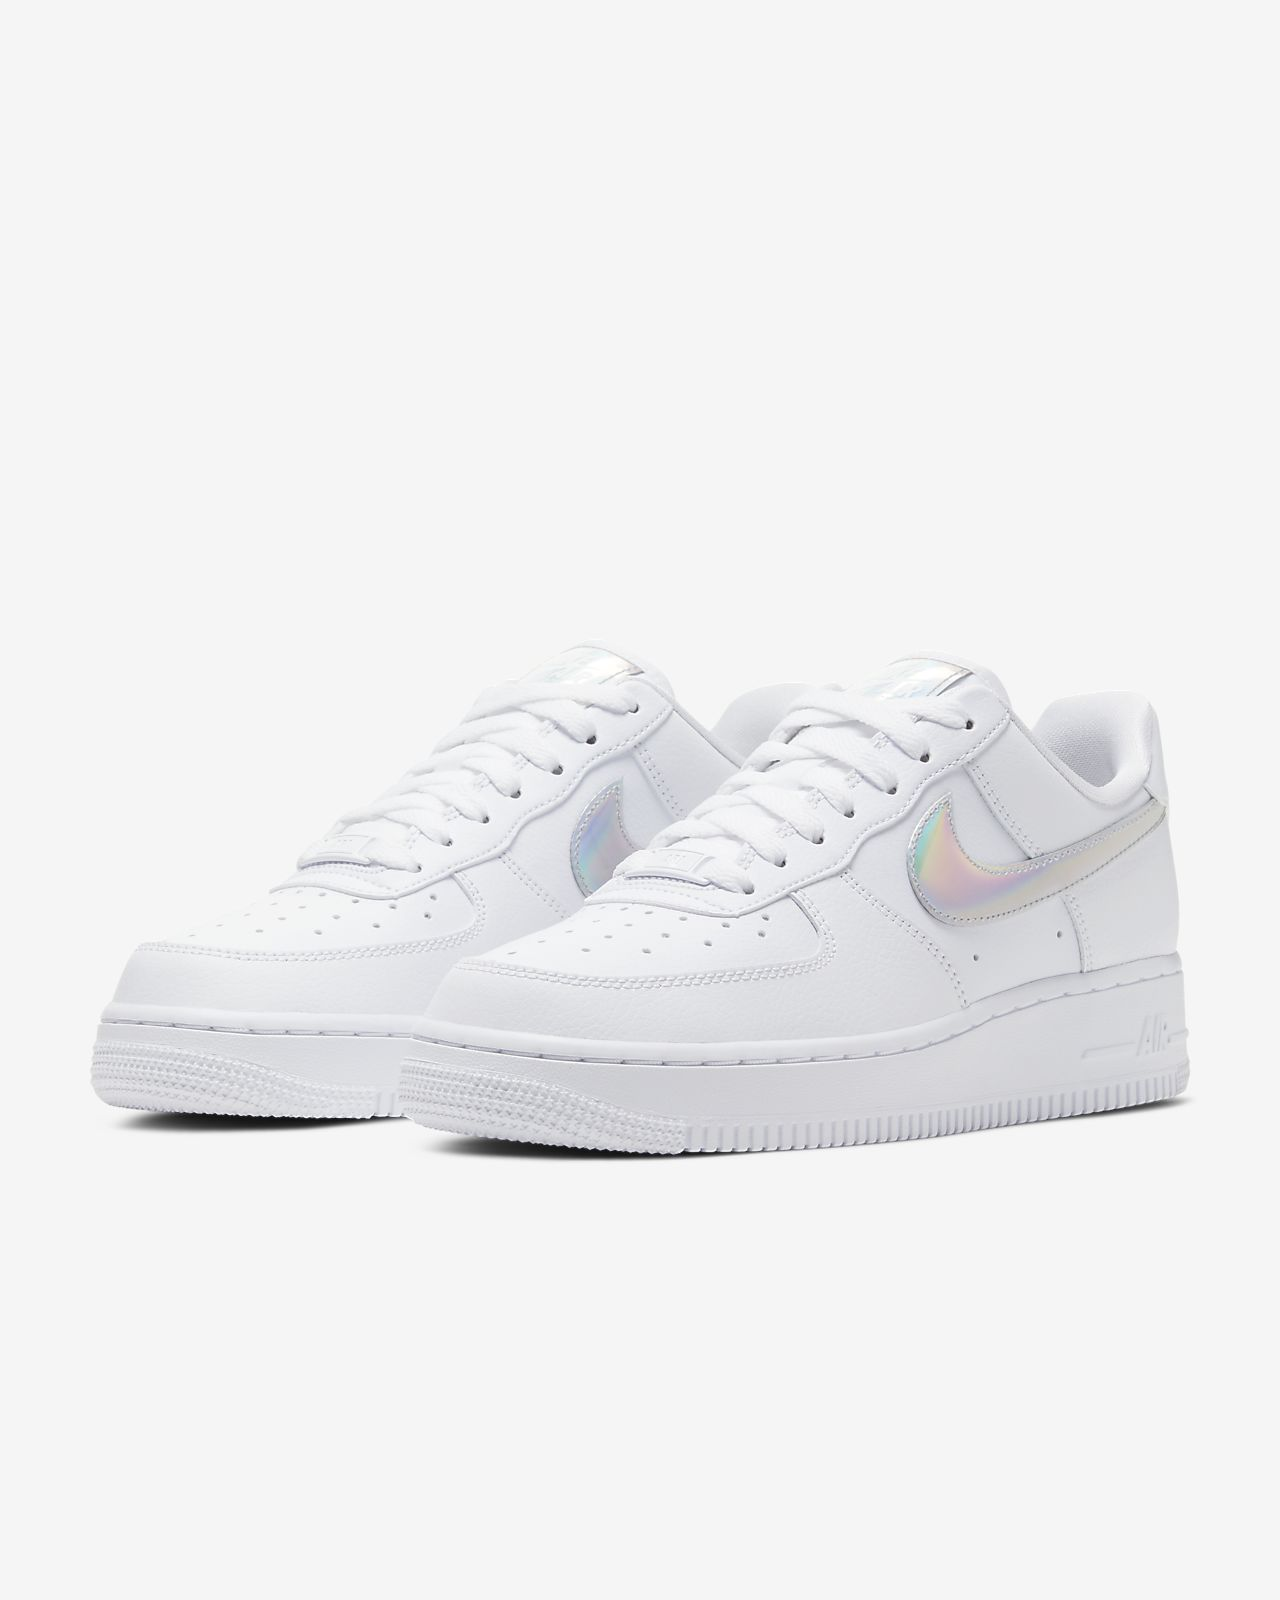 Nike Air Force 1 Low 'Stars' Triple White For Sale